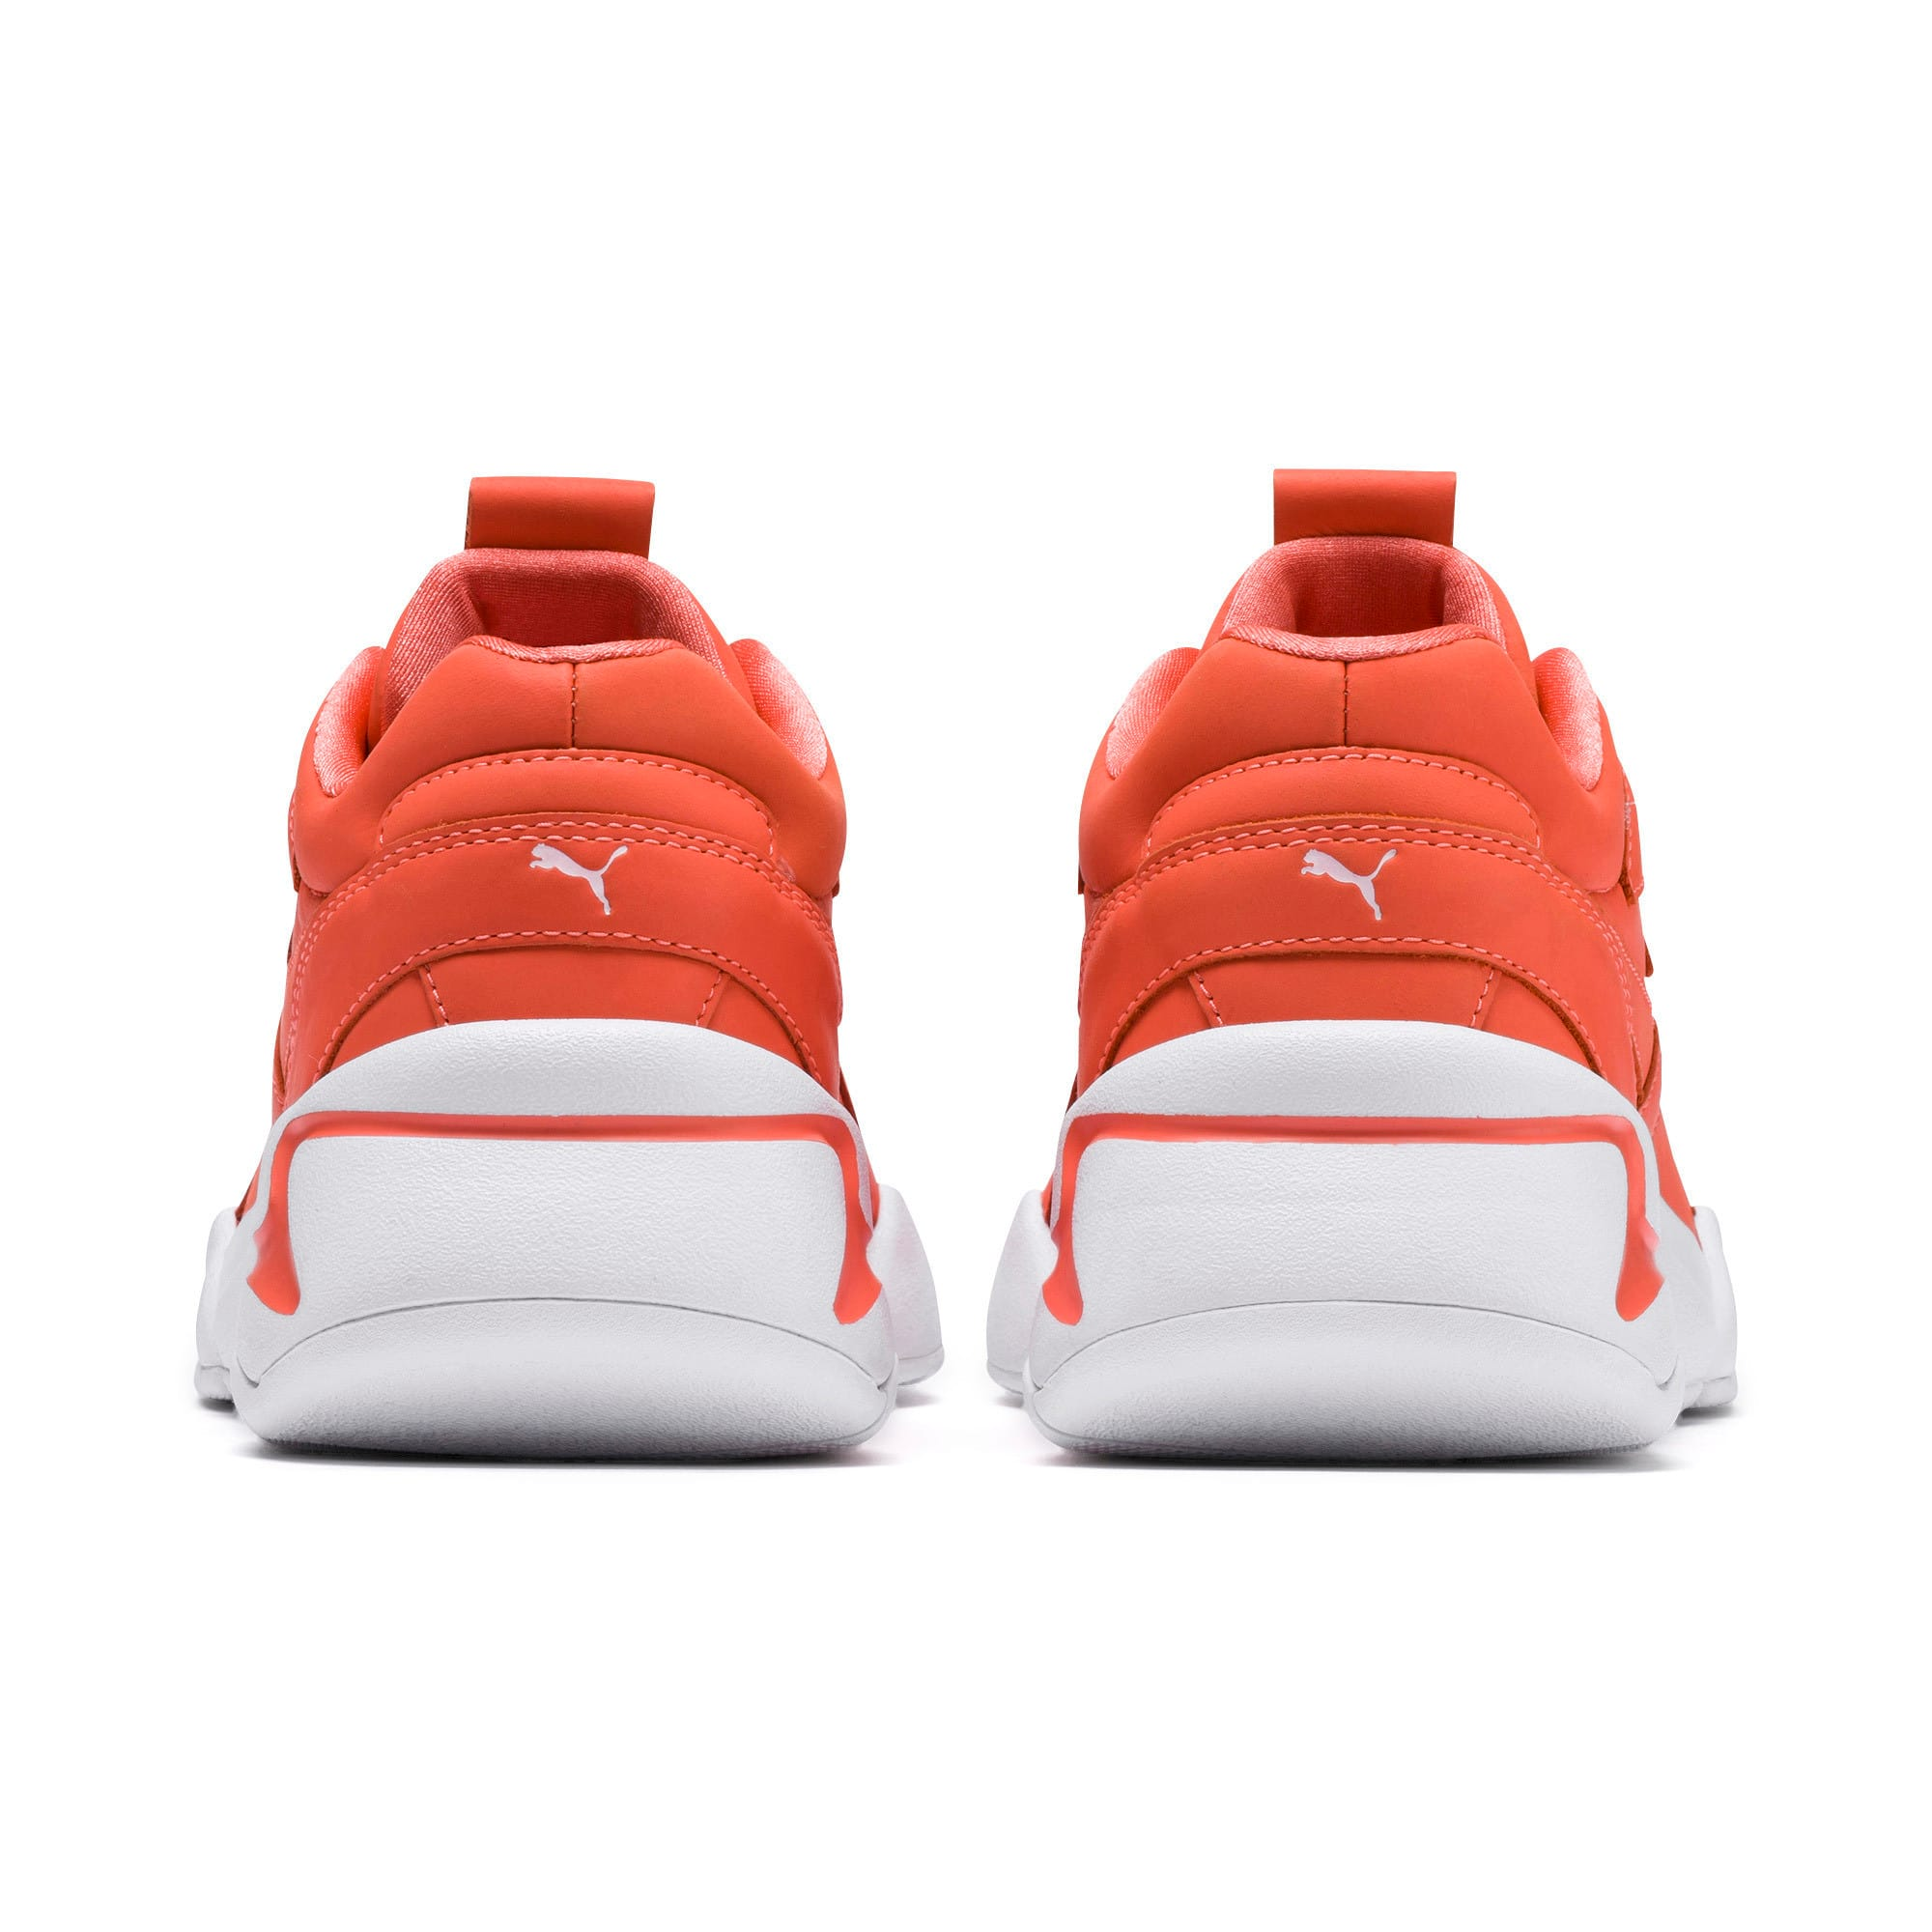 Thumbnail 3 of PUMA x PANTONE Nova Women's Trainers, Living Coral-Puma White, medium